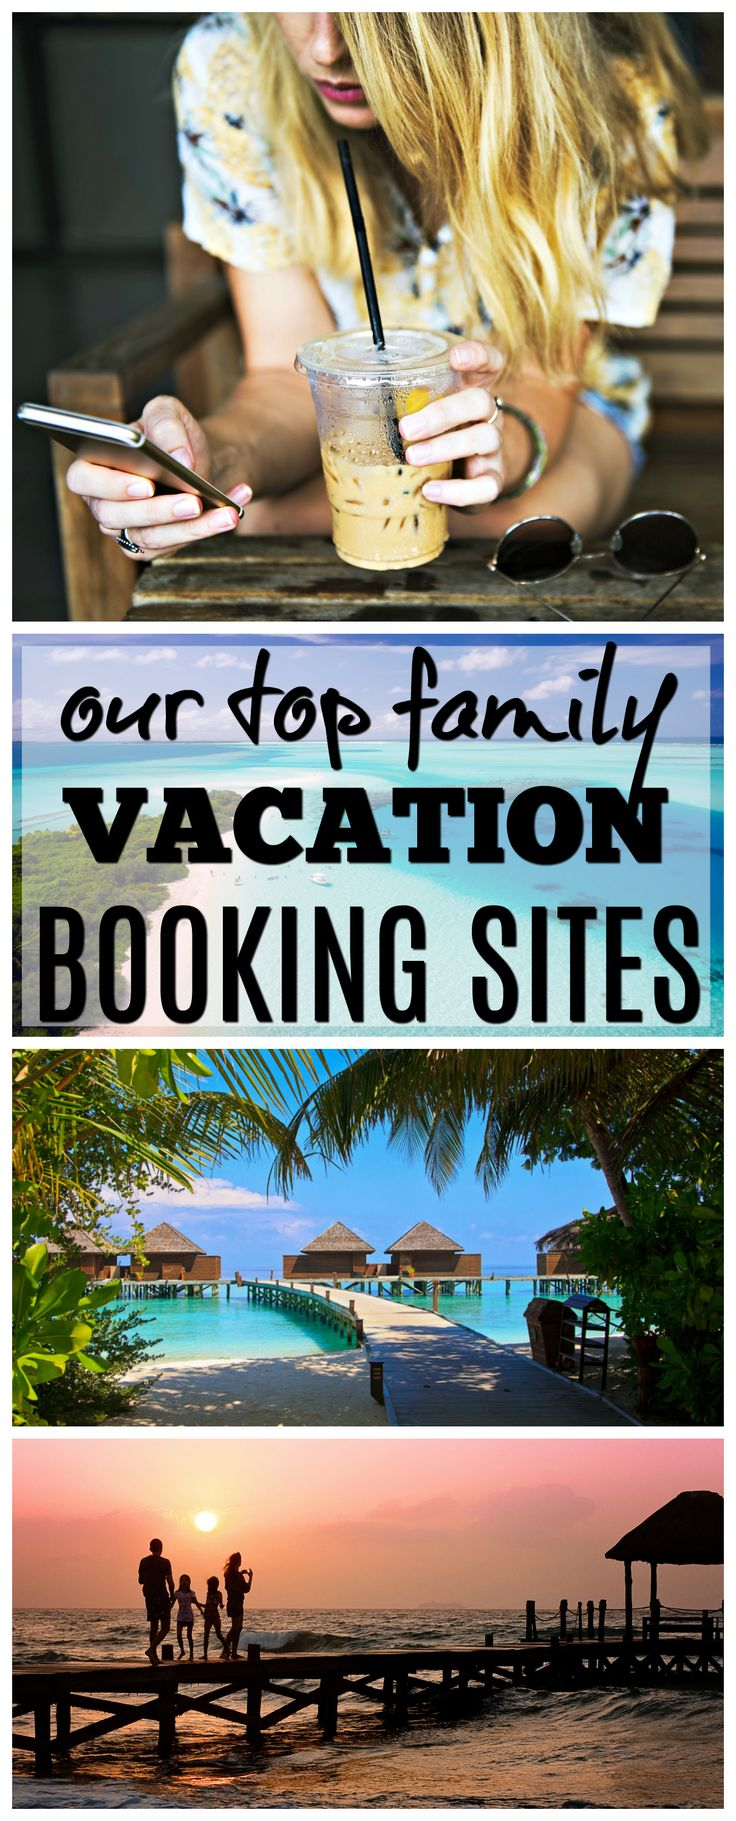 The best online vacation booking sites when it comes to planning family travel online. Last-minute deals, flash sales, cruises, packages, flights, hotels, car rentals and more. Save this article for help building your next getaway in the USA or all over the world!